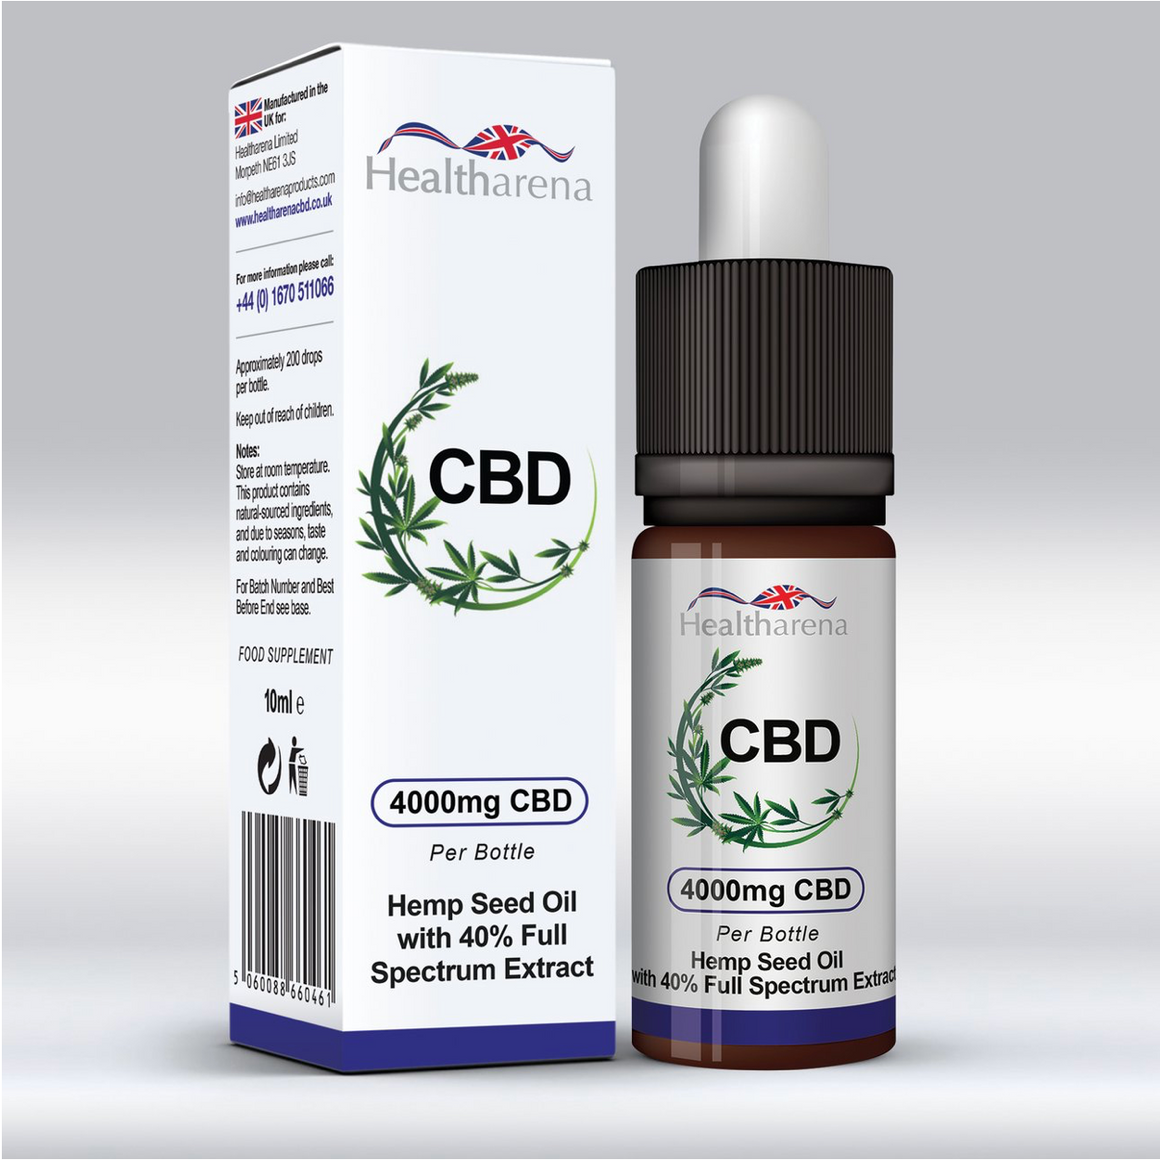 Healtharena CBD Oil 4000mg 10ml